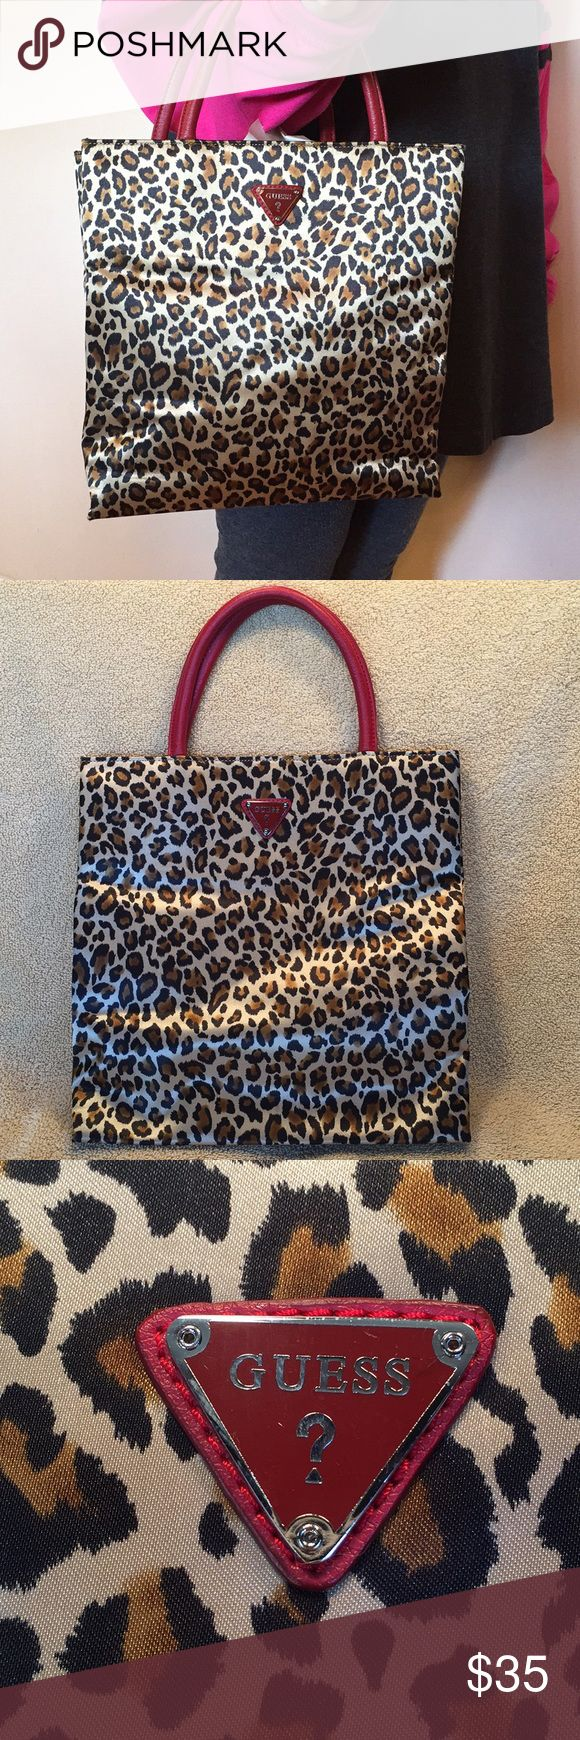 Authentic Guess leopard print bag 👜 Guess brand Size is about 11in x 11in Red accents Snap closure Flatter style bag Guess logo inside bag has some scratching Guess Bags